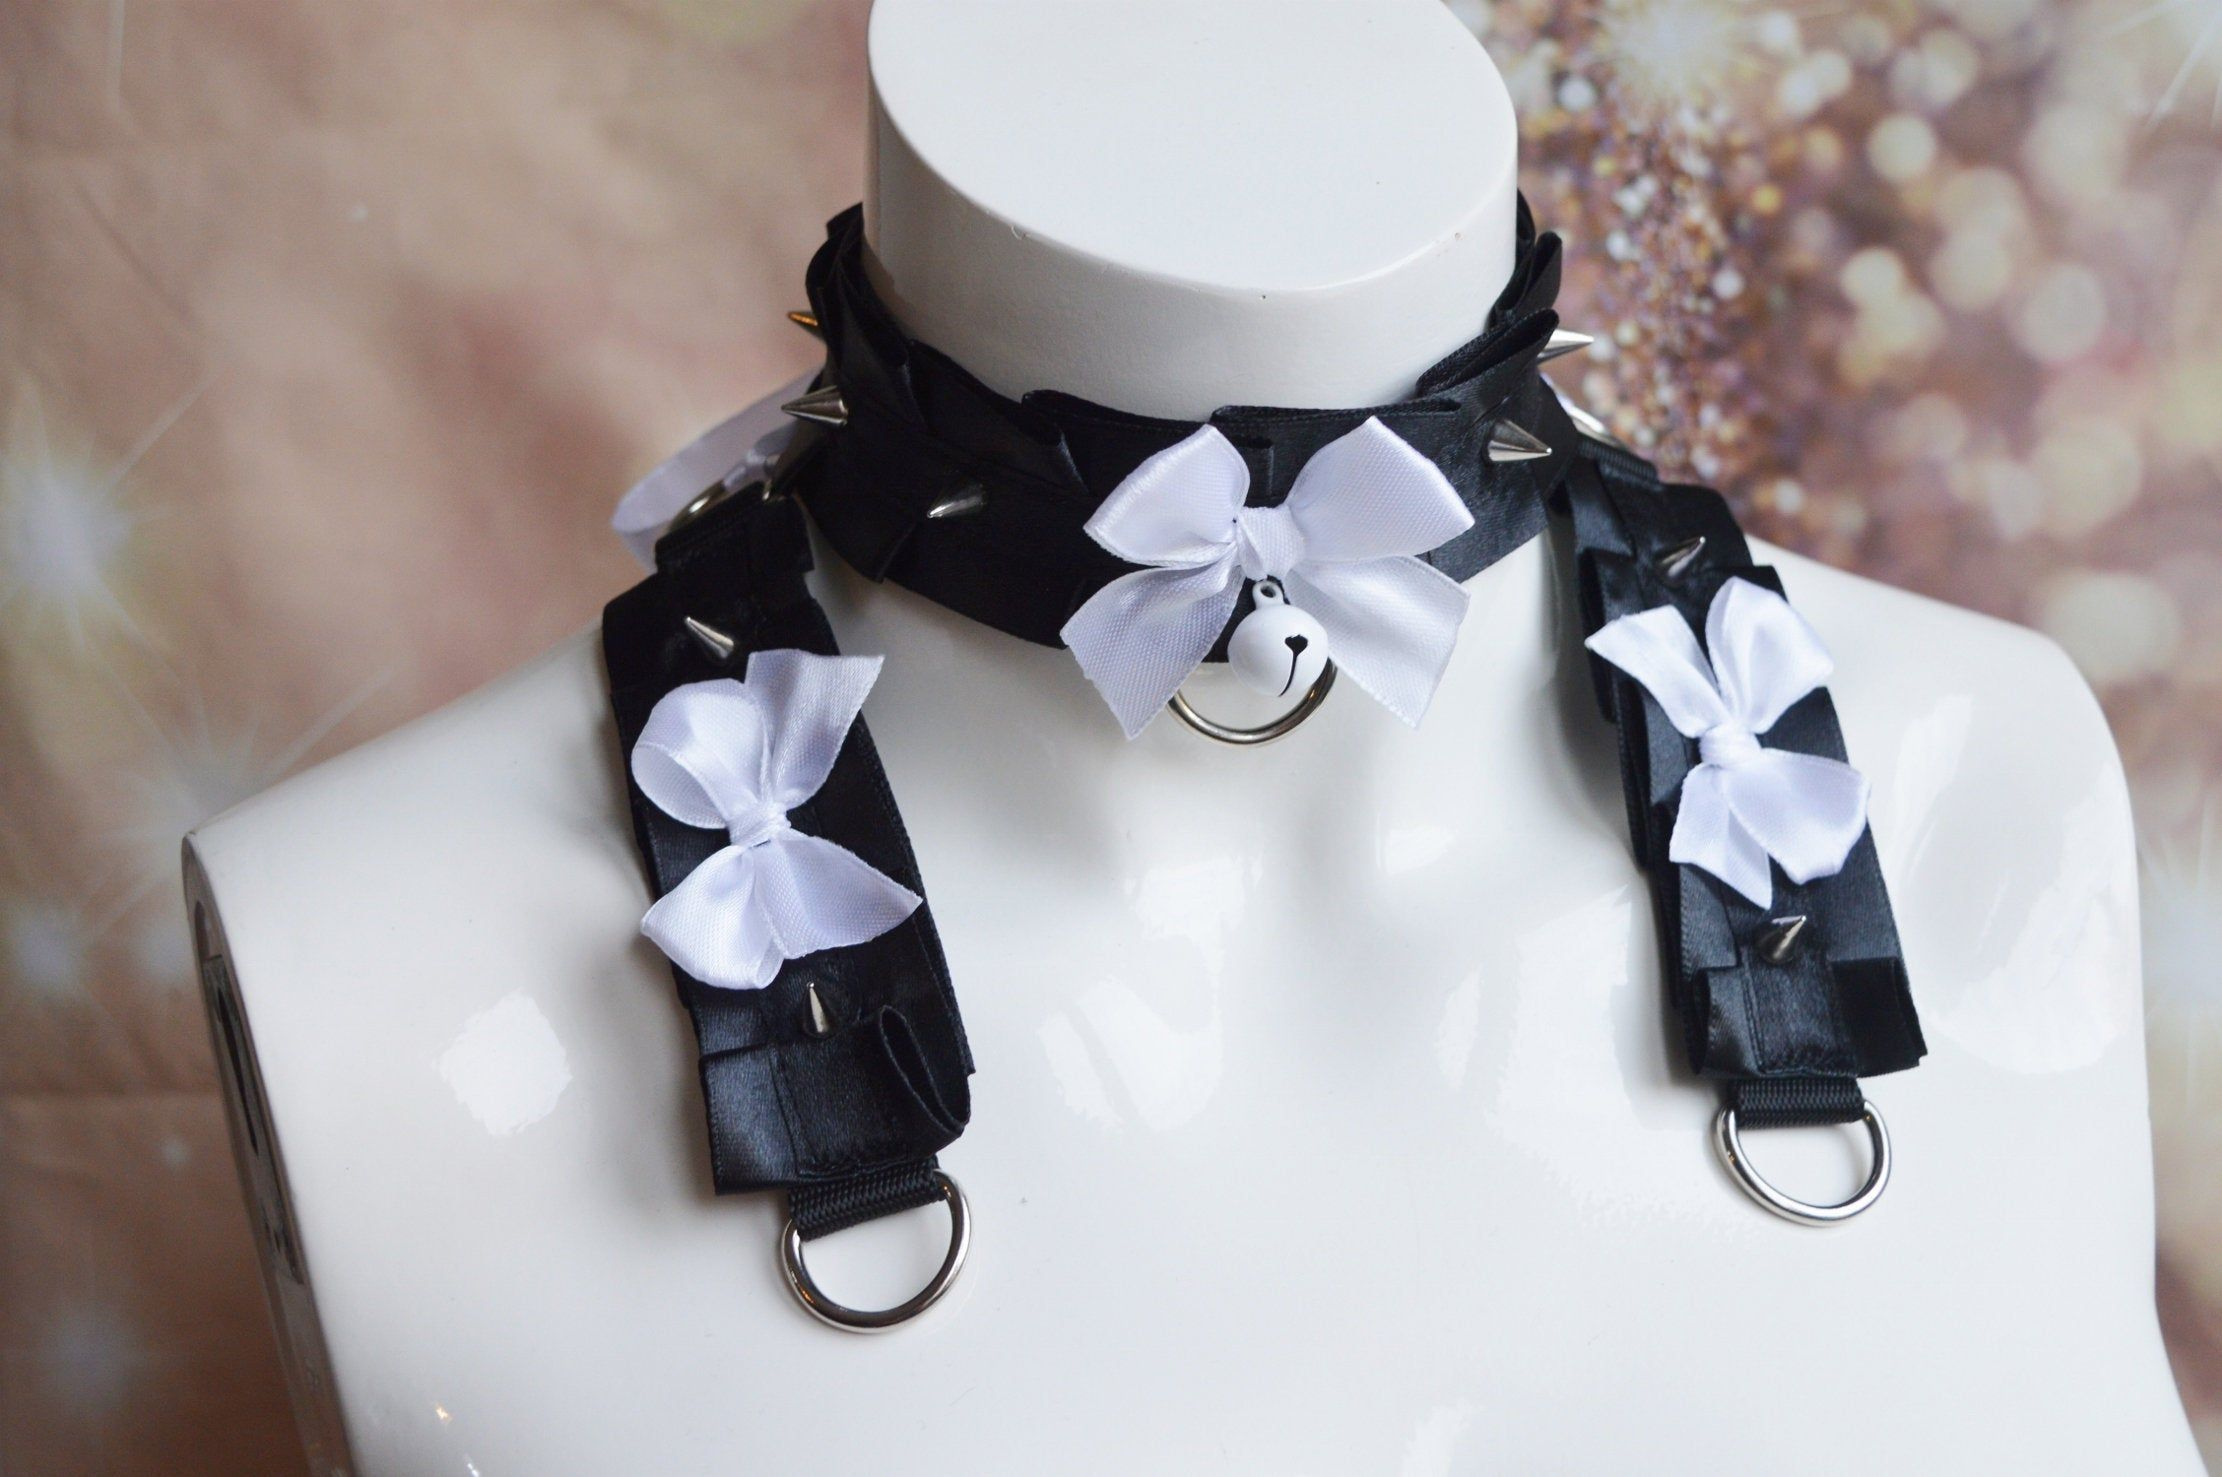 Please Carefuly Read All Description Before Purchase Madetoorder Collar Item Listed Here Is Made To Order In 2020 Kitten Play Collar Collar And Cuff Kitten Play Gear